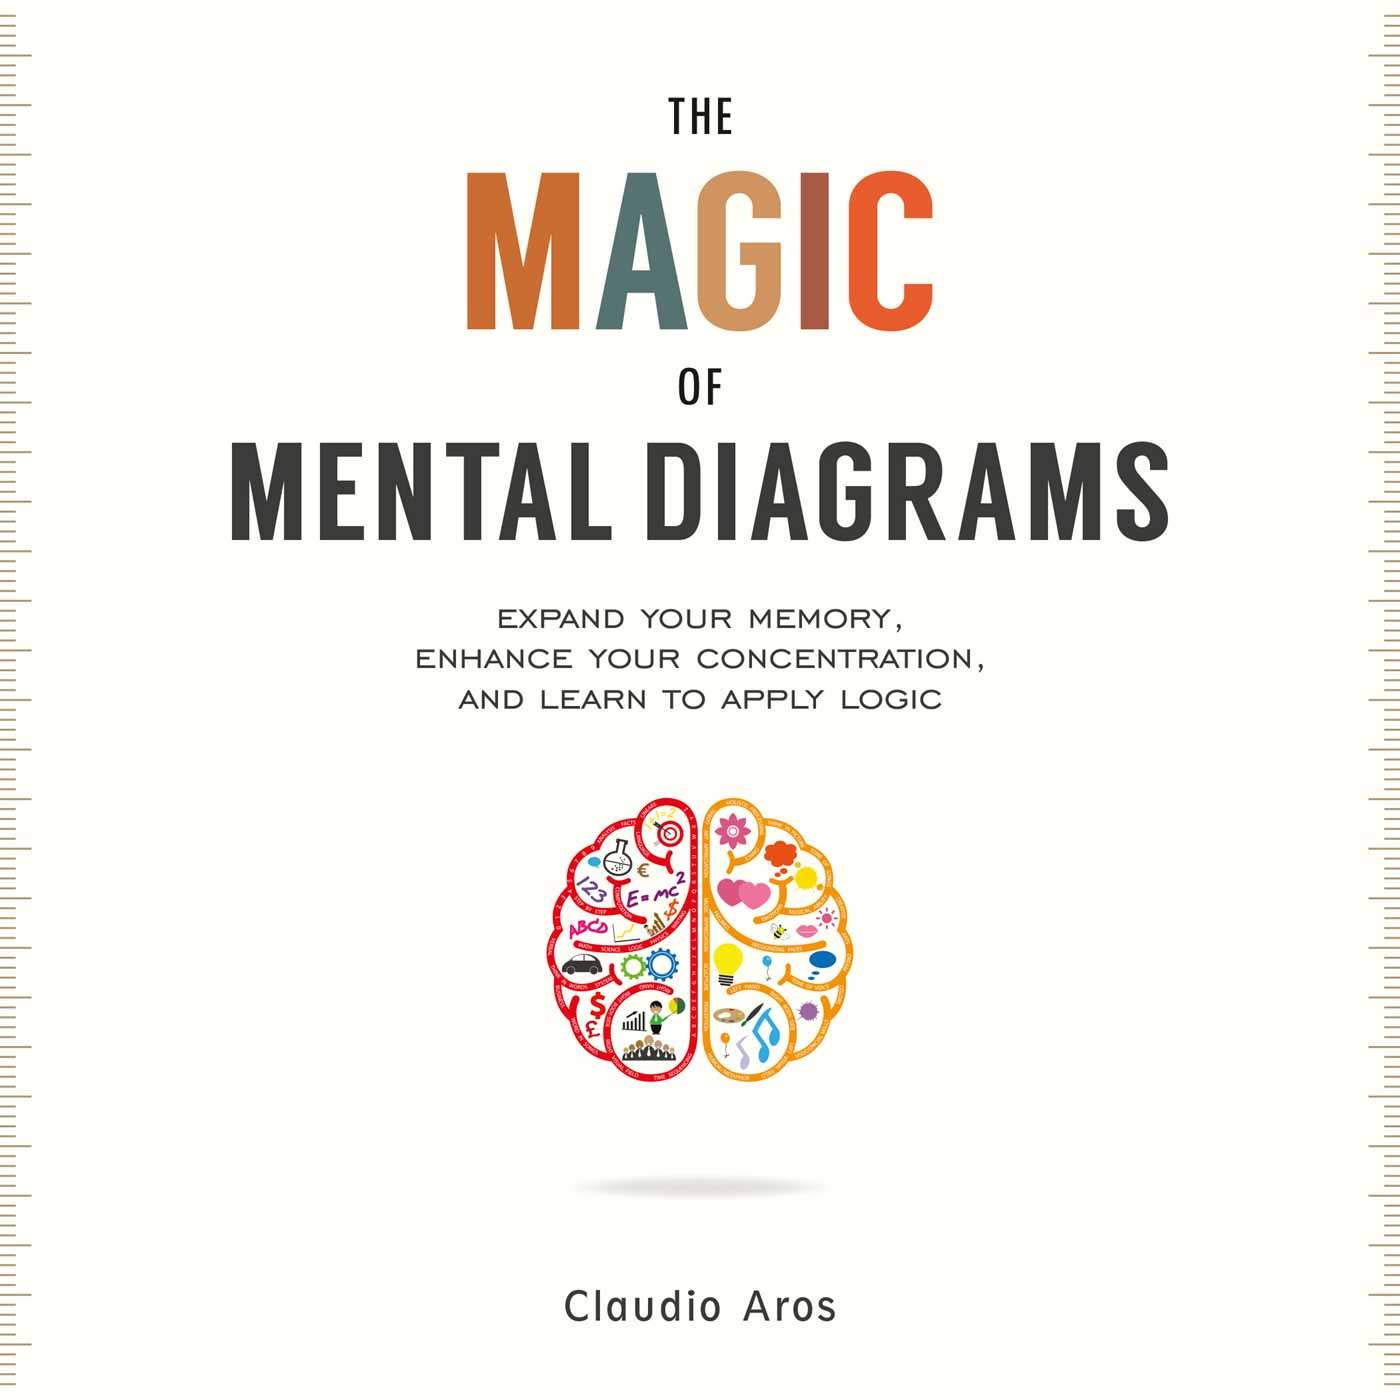 The Magic of Mental Diagrams: Expand Your Memory, Enhance Your Concentration, and Learn to Apply Logic by Skyhorse